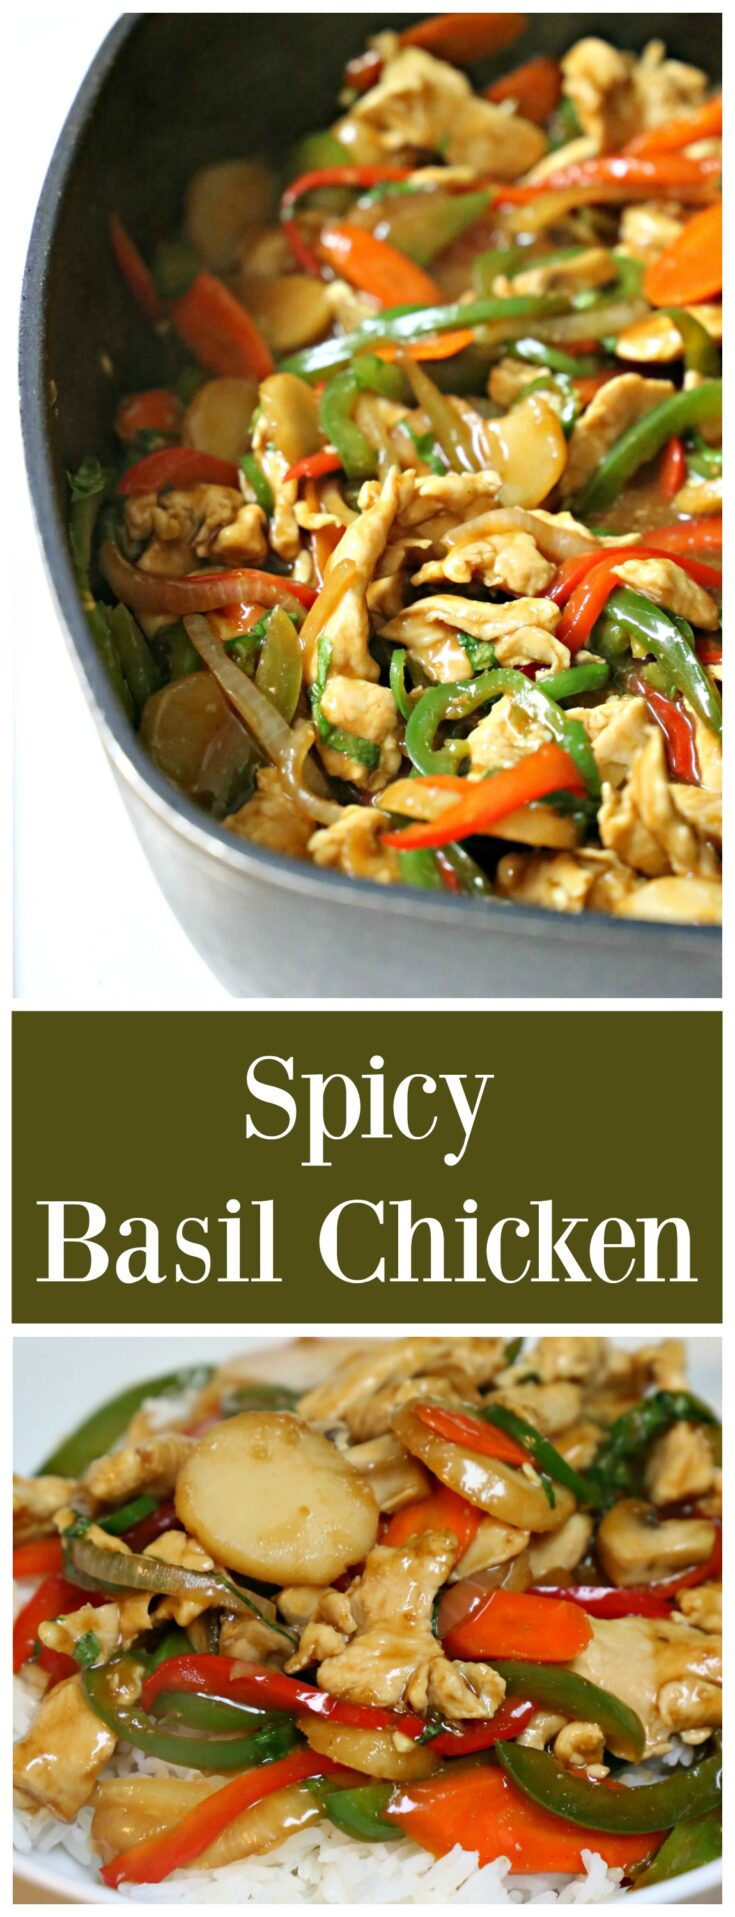 If you like spicy dishes then you are going to LOVE this Thai Spicy Basil Chicken Stir-Fry recipe. The dish is full of veggies and can be prepared in one skillet. Serve with some rice and it's a great Thai dinner for 4-6 hungry folks.